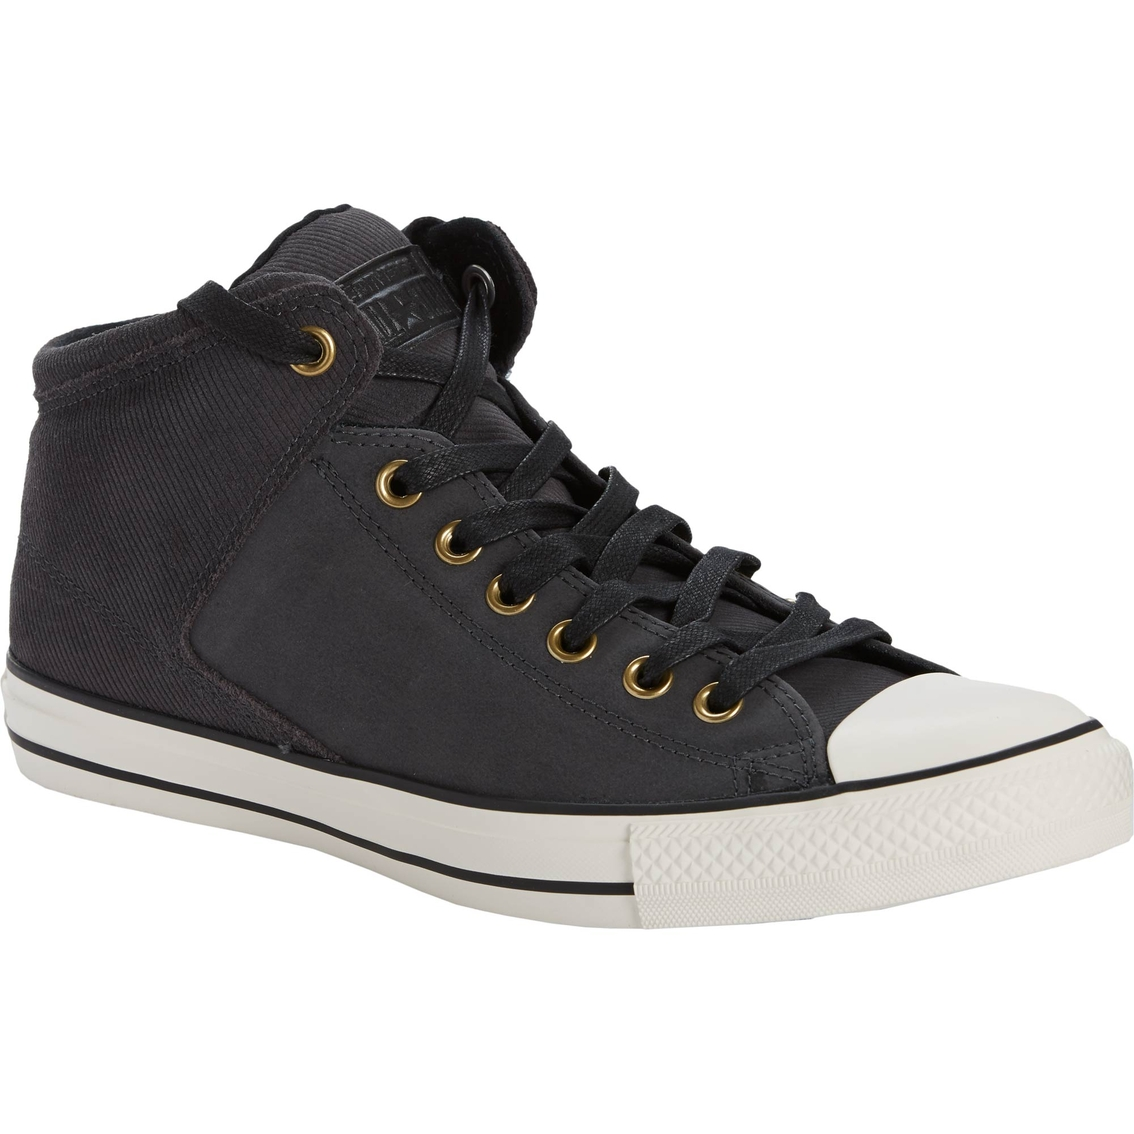 High Star Converse Taylor Top Street Men's Chuck Sneakers All wXXF6ATq